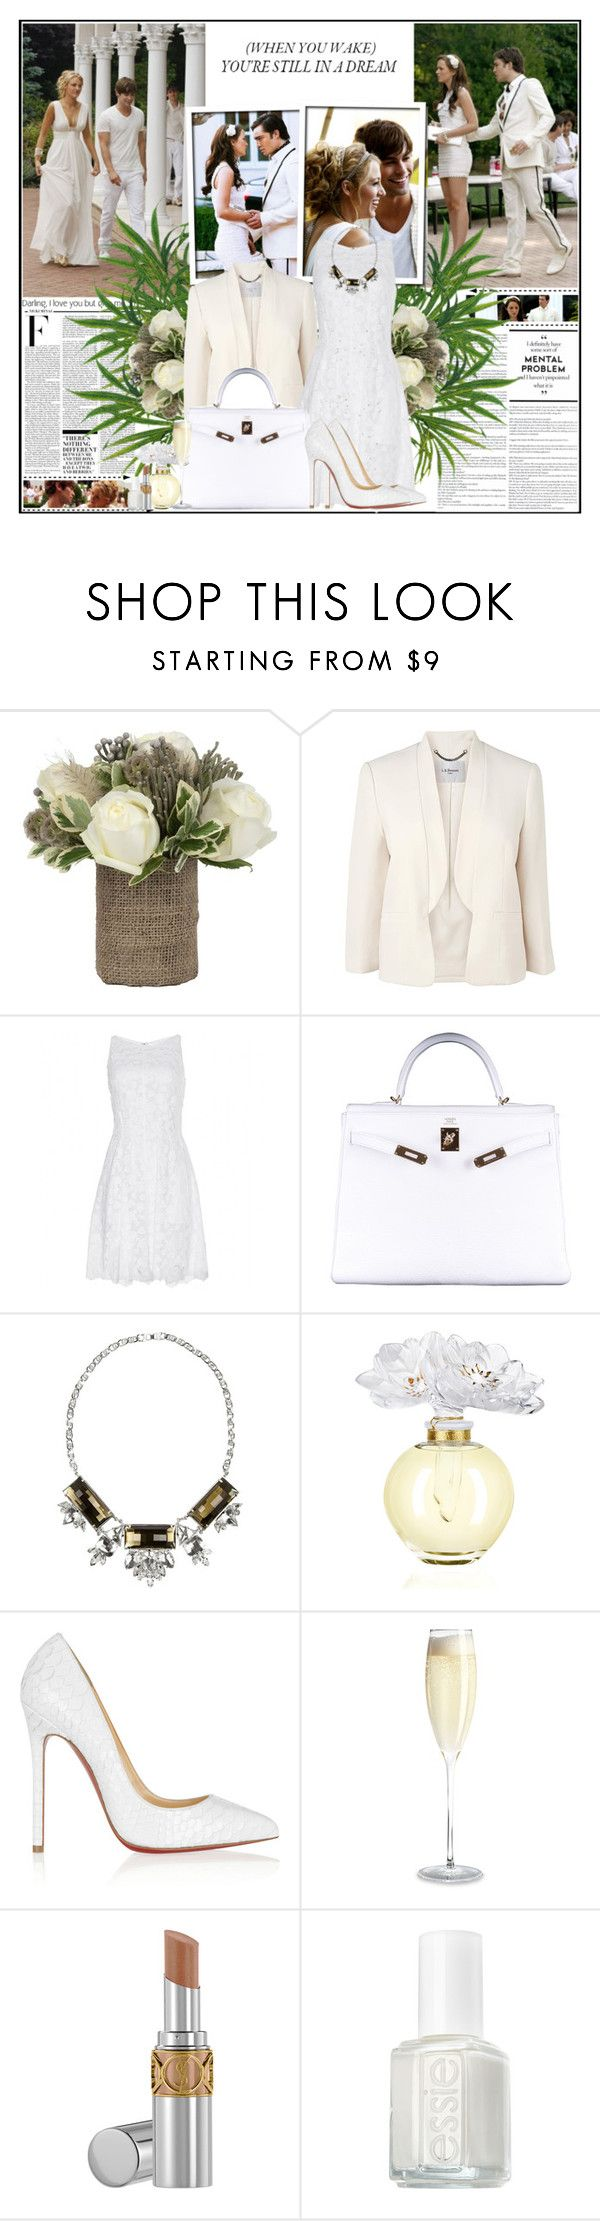 """""""05/08/2014 That I'm not a princess, this ain't a fairytale, I'm not the one you sweep off her feet, lead her up the stairwell."""" by thefrenchfashionista ❤ liked on Polyvore featuring Avenue, Nicki Minaj, Episode, Jayson Home, L.K.Bennett, Nina Ricci, Hermès, Noir Jewelry, Lalique and Christian Louboutin"""